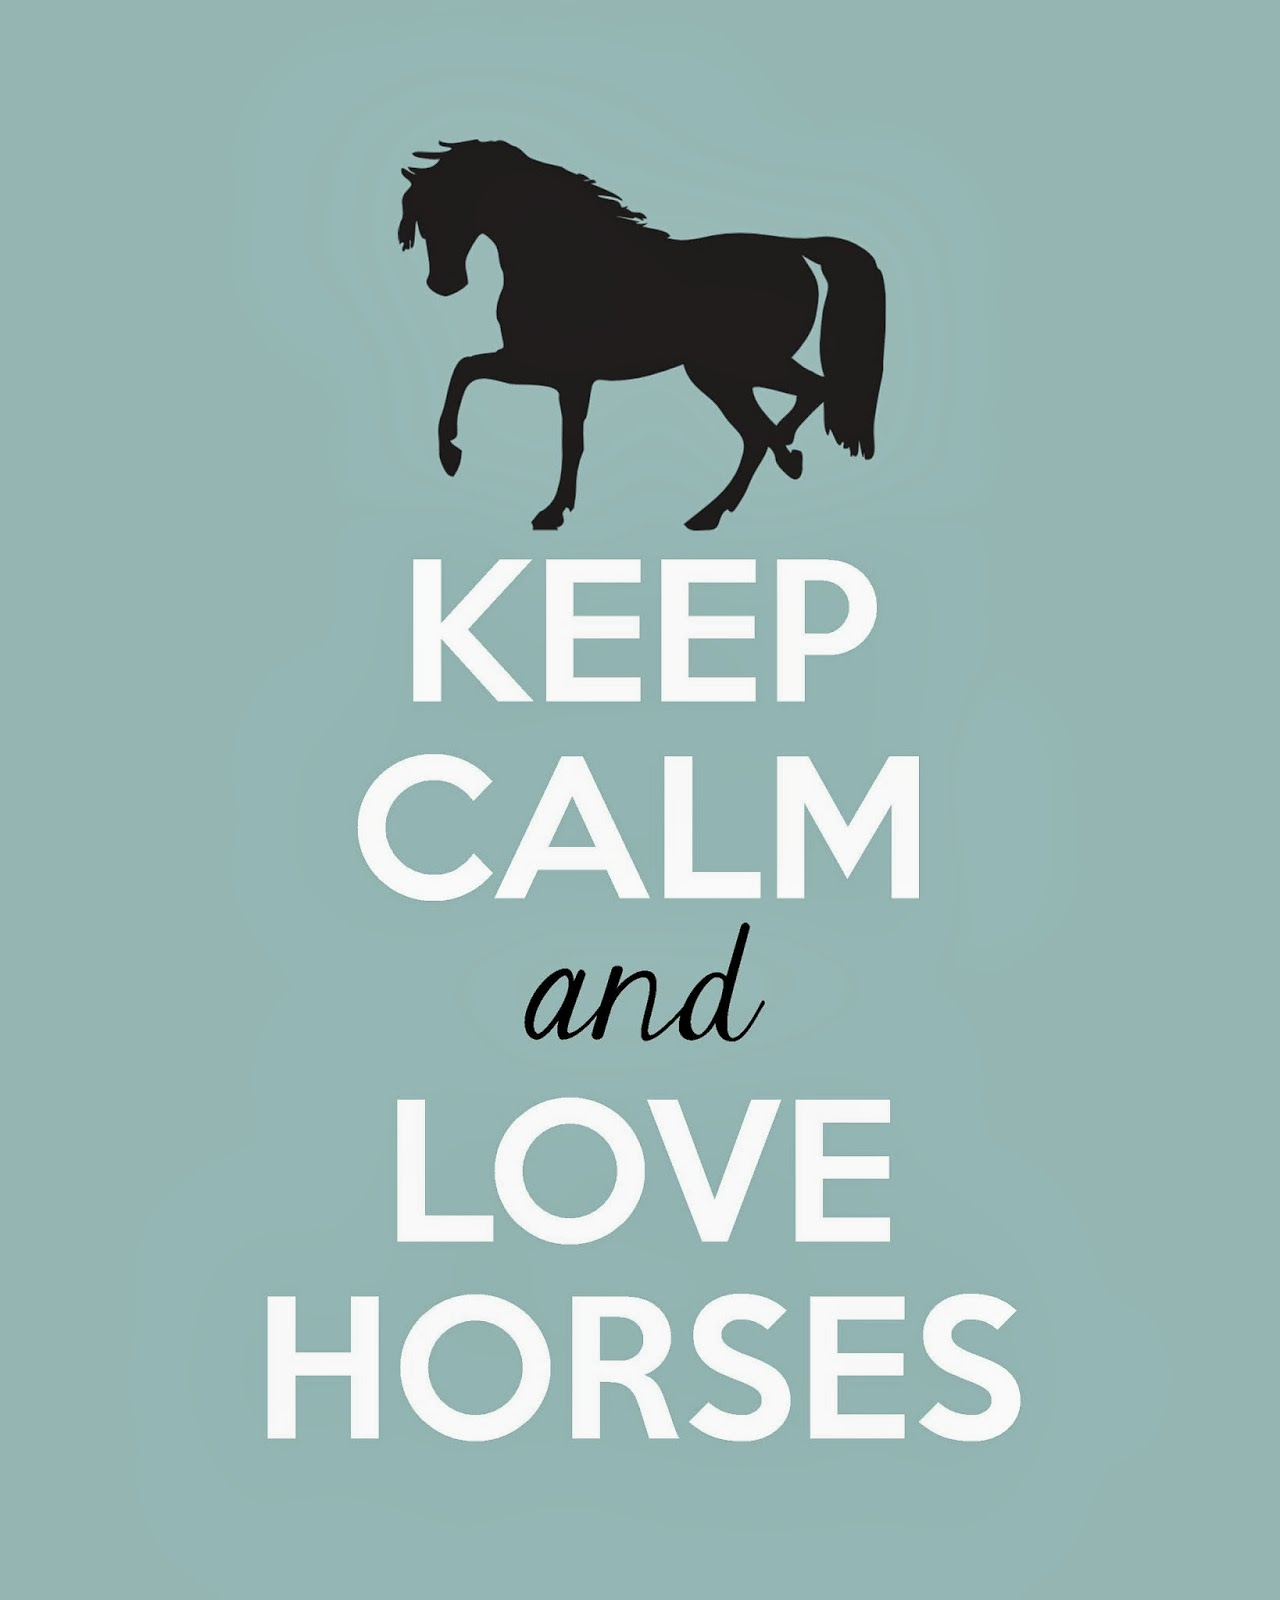 Full of Great Ideas: Keep Calm and Love Horses - Free Printable